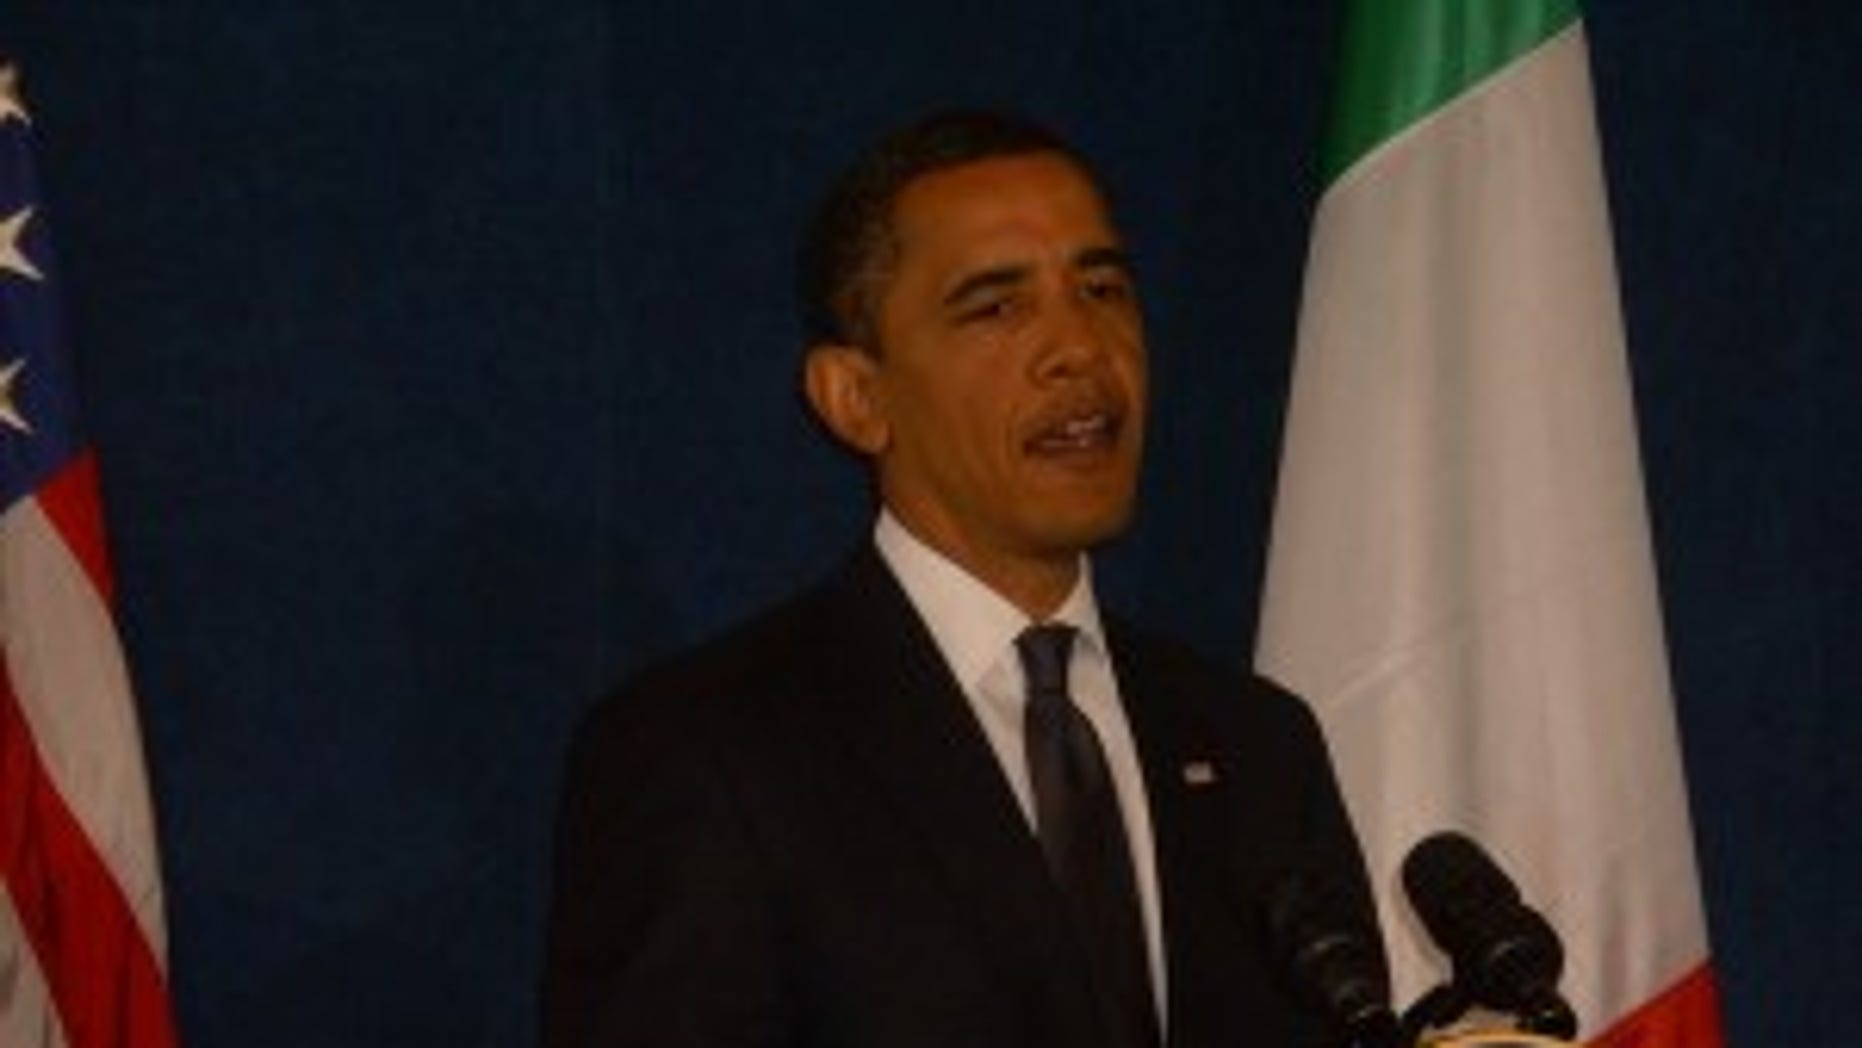 President Obama at a closing press conference in L'Aquila, Italy (photo by Major Garrett)